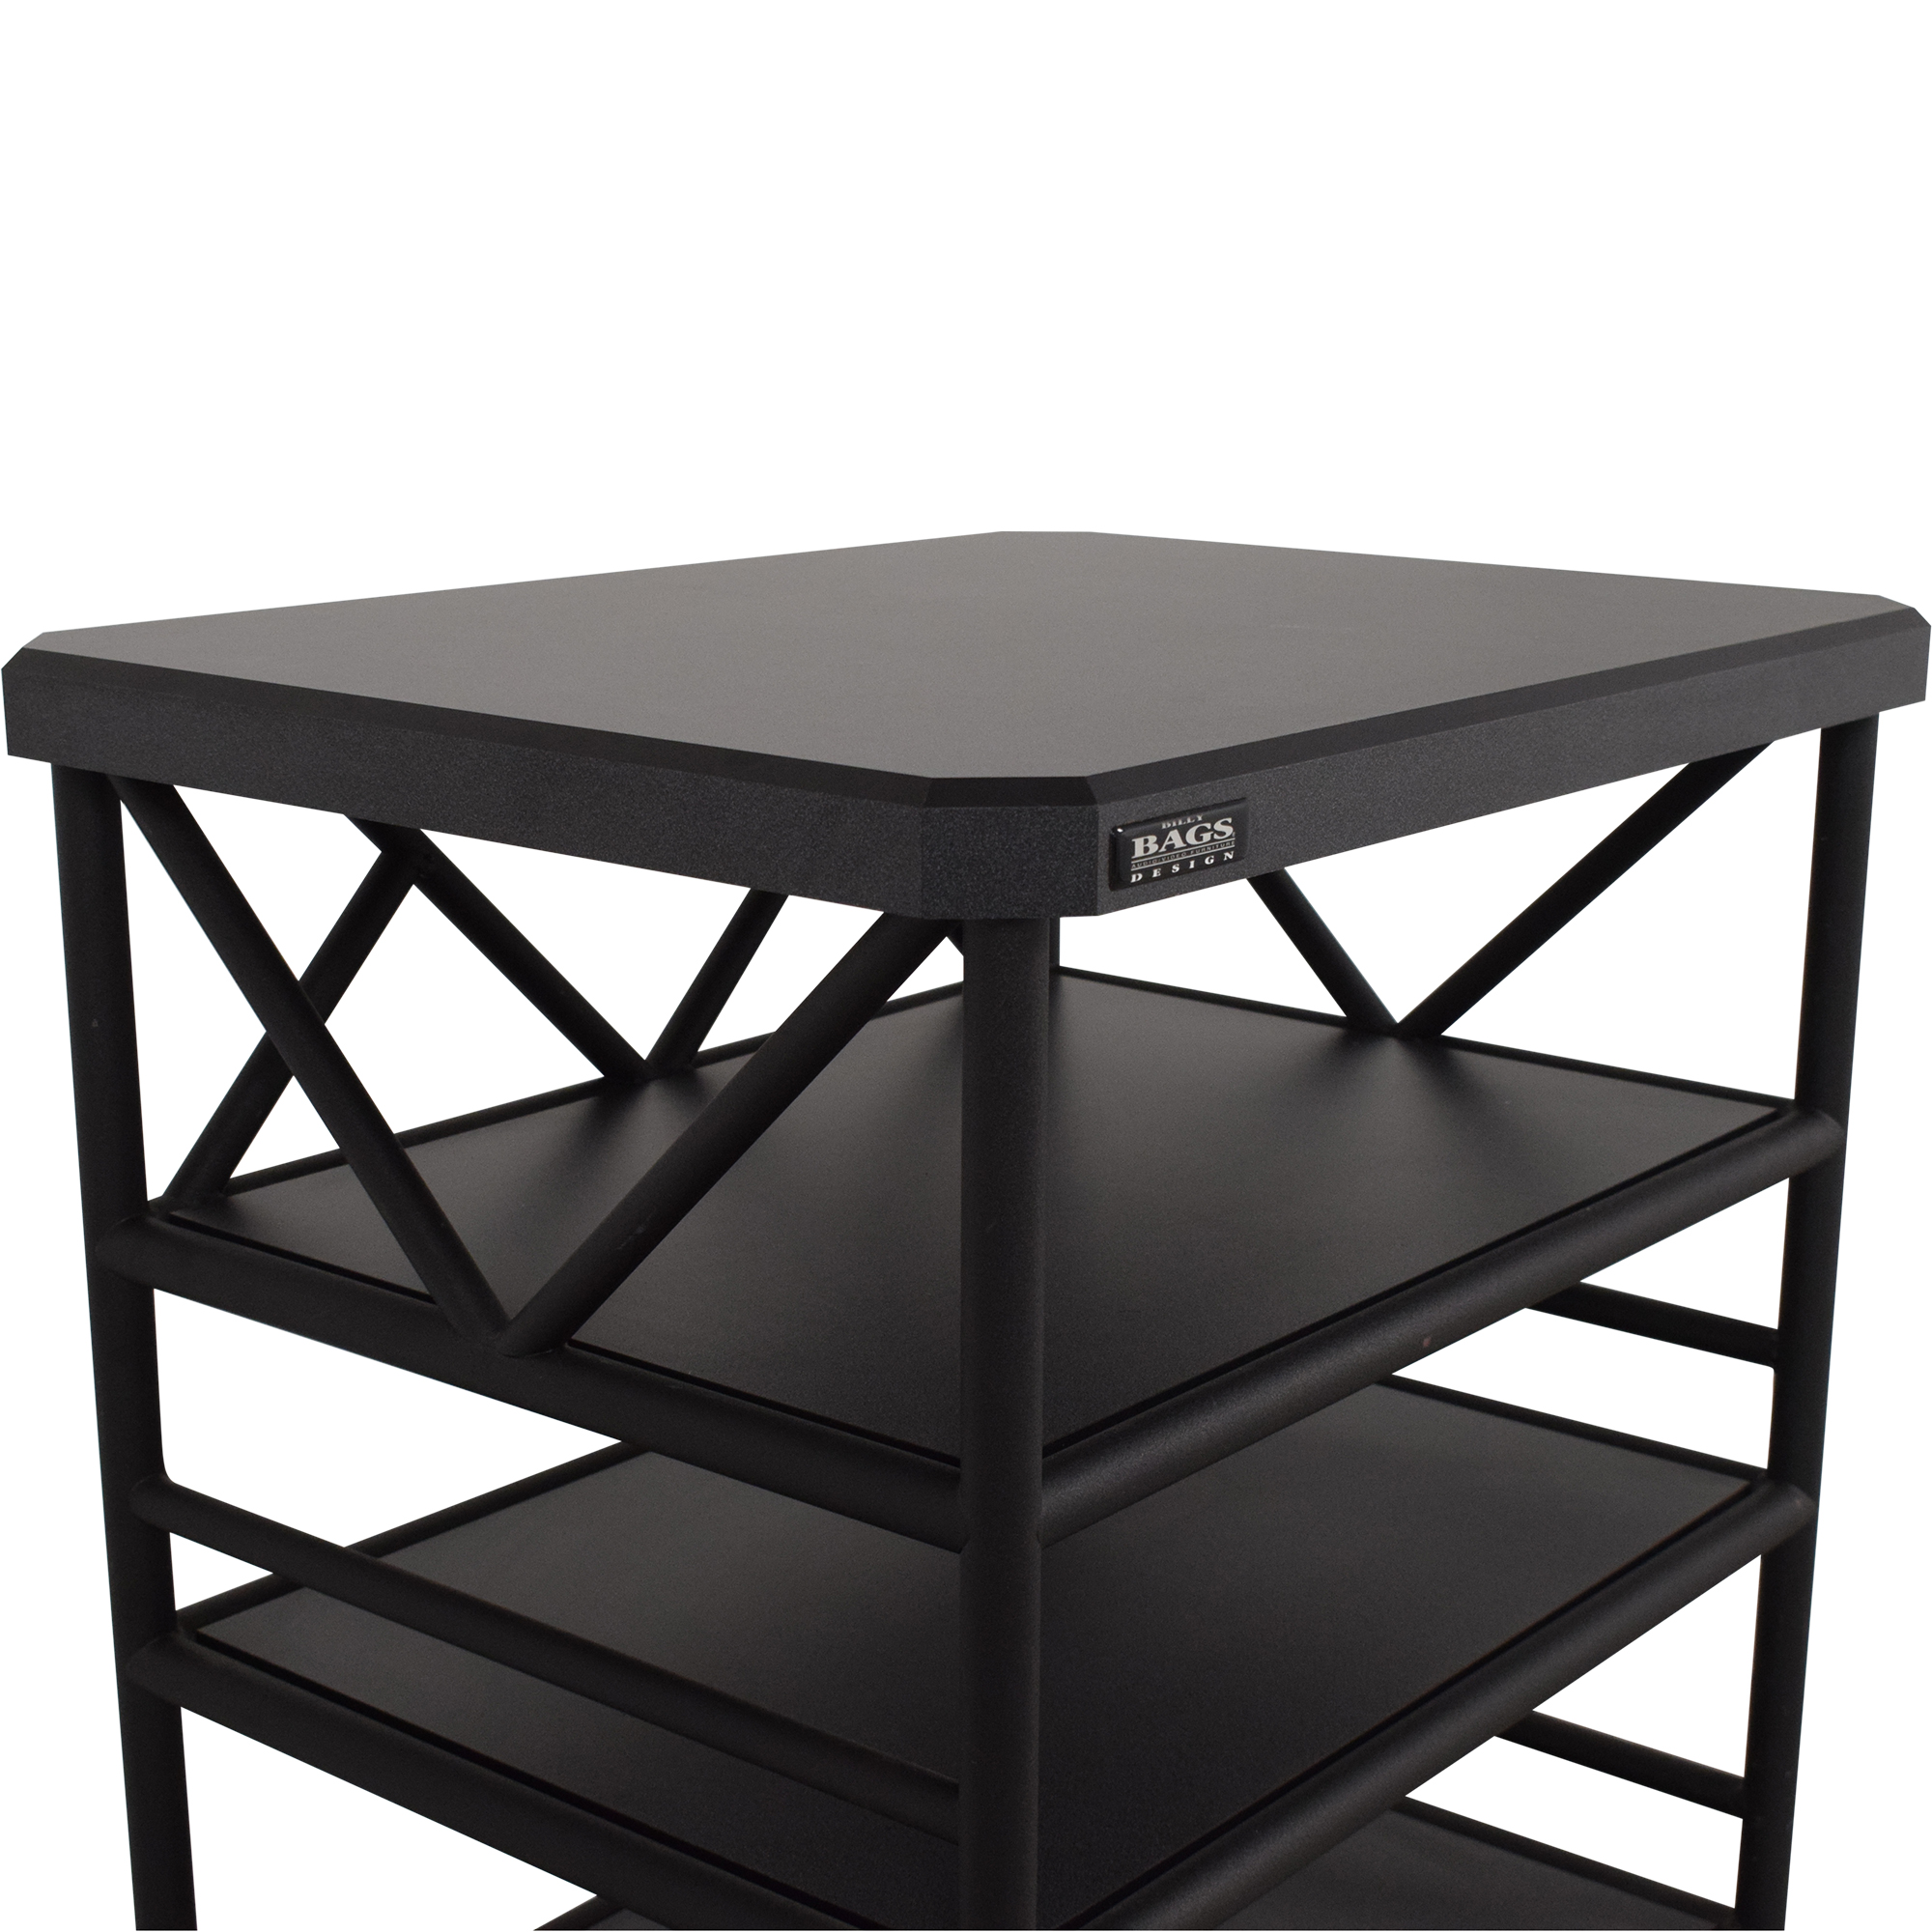 Billy Bags Billy Bags Pro-Stand Media Rack second hand